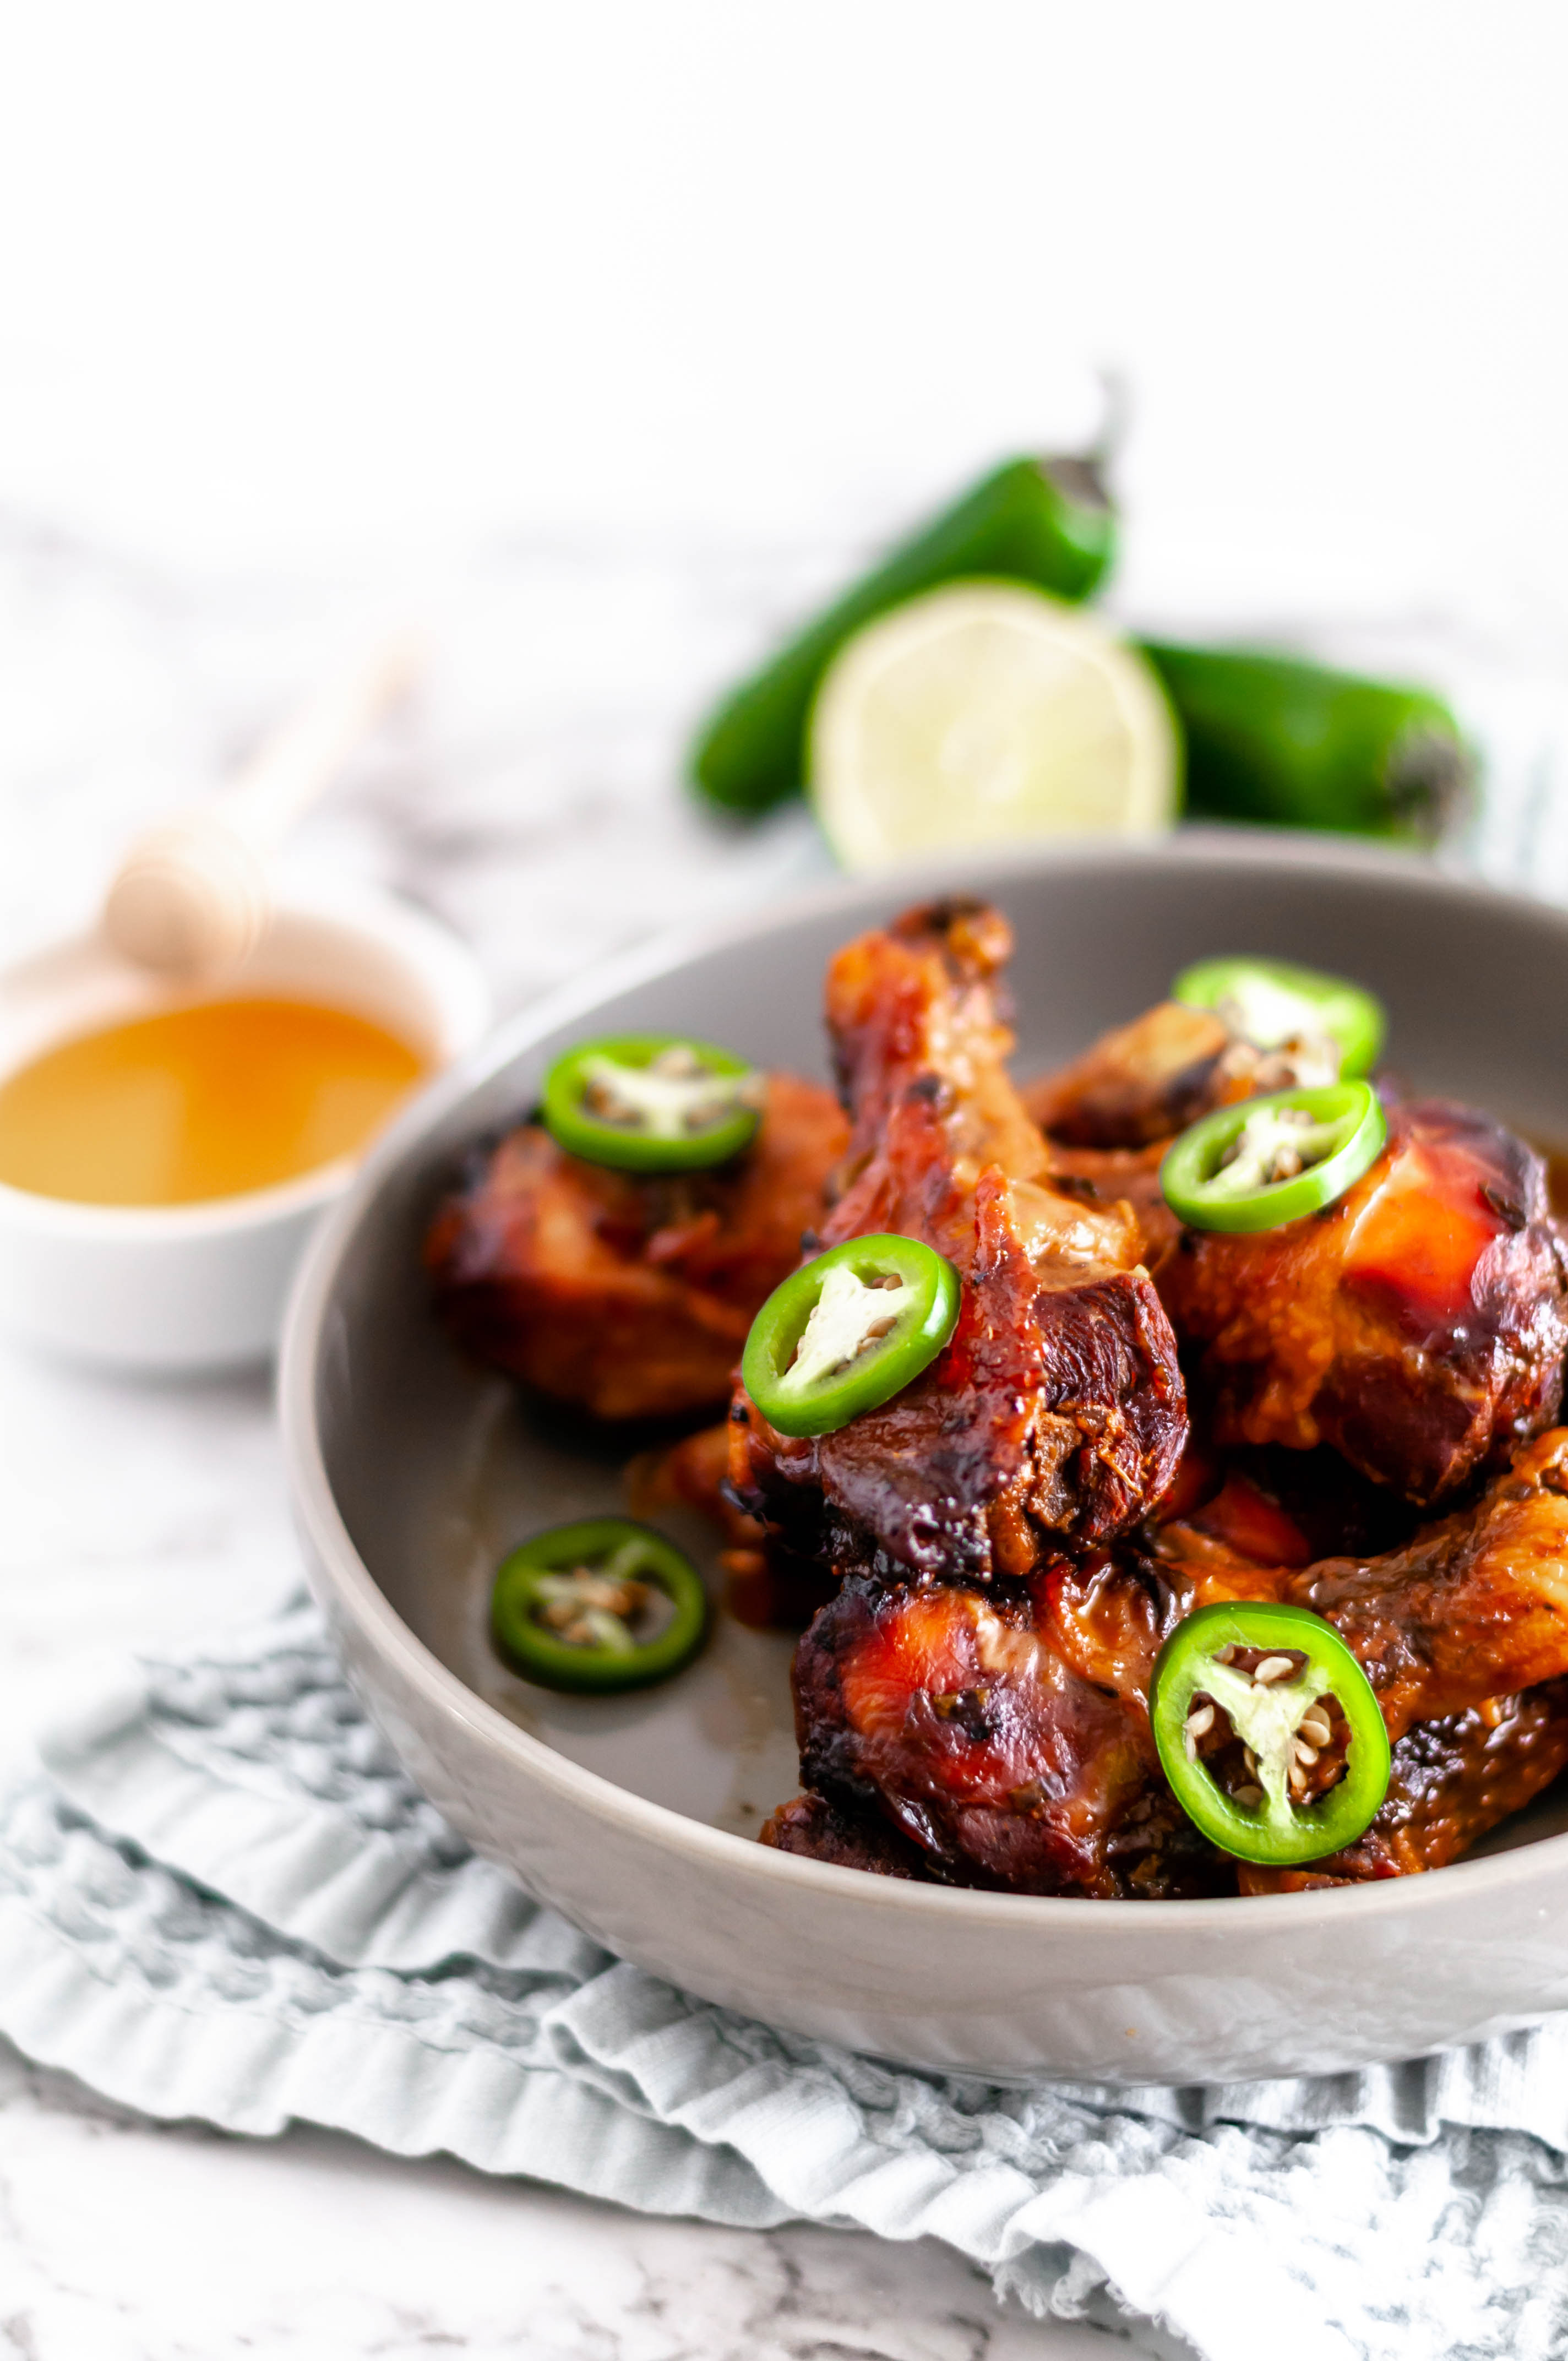 This Slow Cooker Honey Jalapeno Chicken Drumsticks are perfect for busy weeknights. Just a few ingredients tossed into the slow cooker & dinner is served.